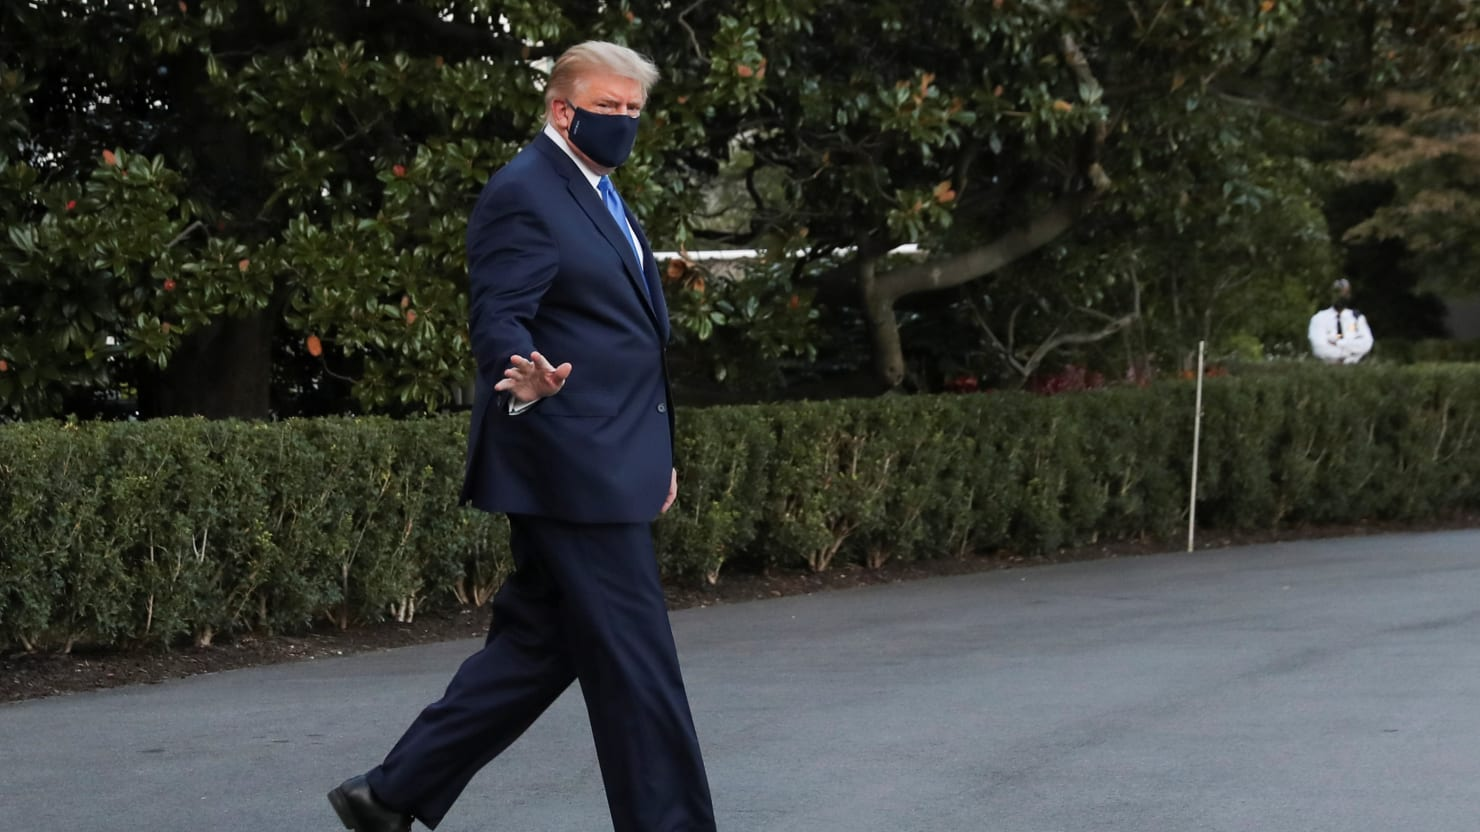 Trump's Staff Decided to Send Him to the Hospital While He Could Still Walk on His Own: WaPo